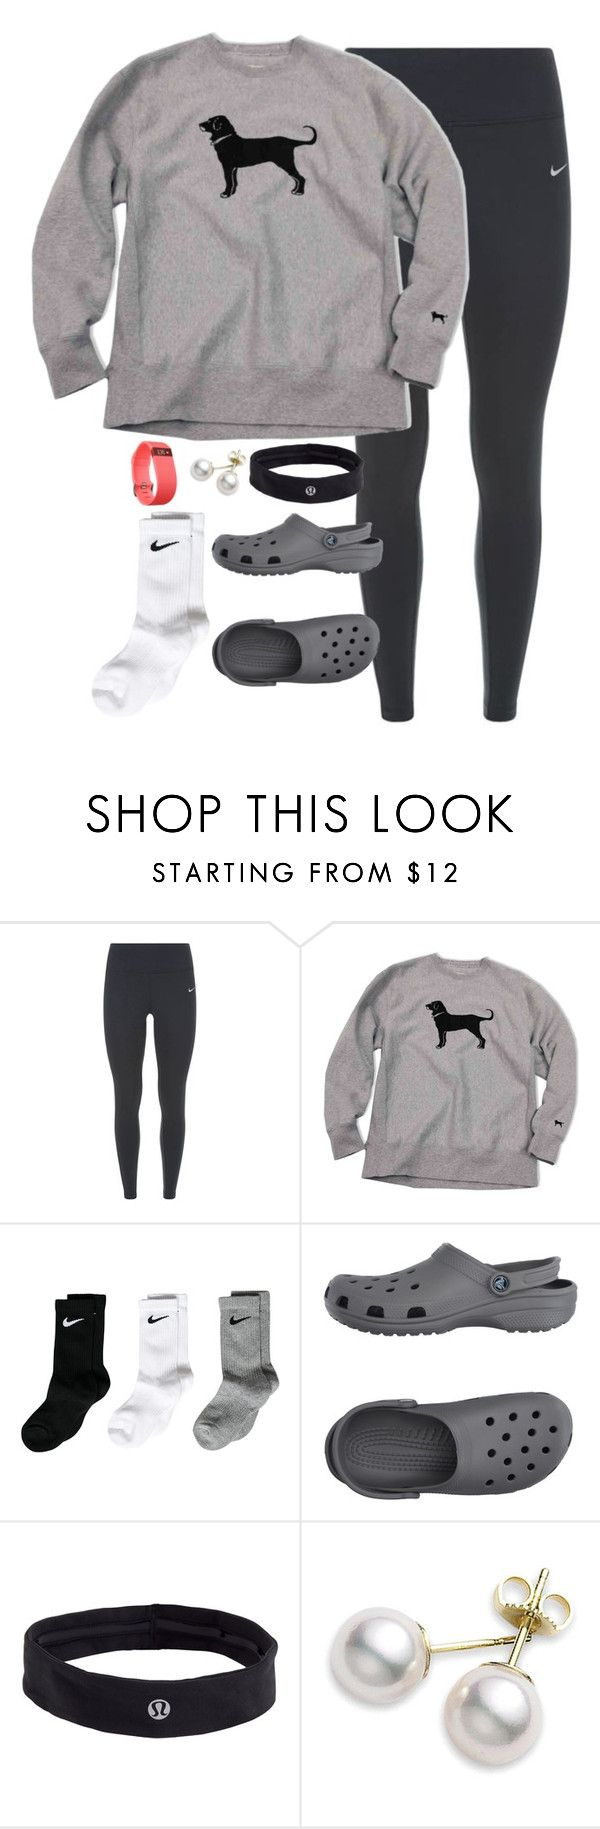 """Track meet today!!!"" by keileeen ❤ liked on Polyvore featuring NIKE, Crocs, lululemon, Mikimoto and Fitbit"